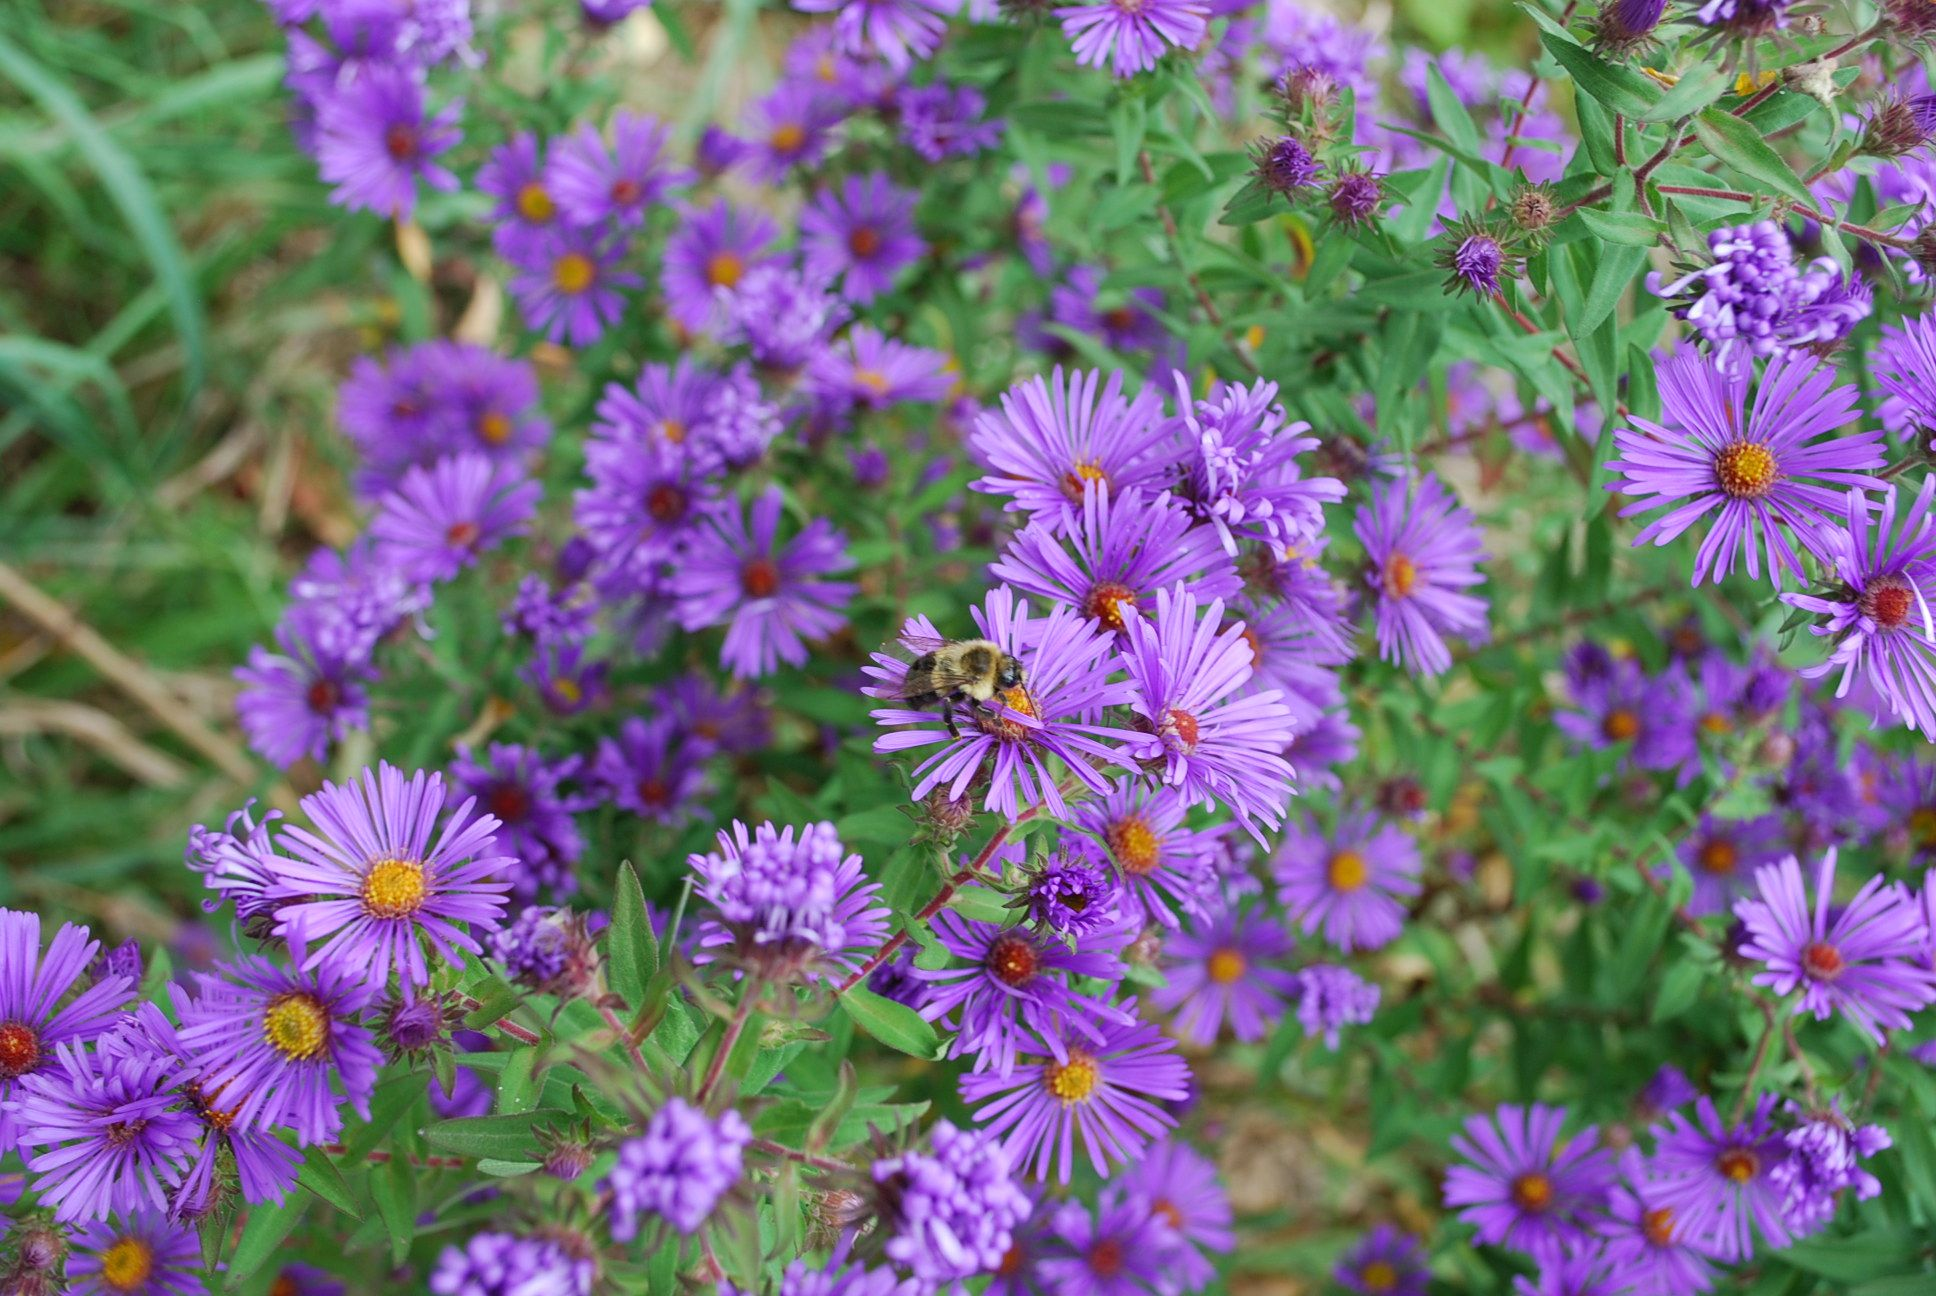 New England Aster Aster Novae Angliae Root Tea Was Used For Diarrhea And Fever Asters In General Were Used For Plant Combinations Plants Medicinal Herbs